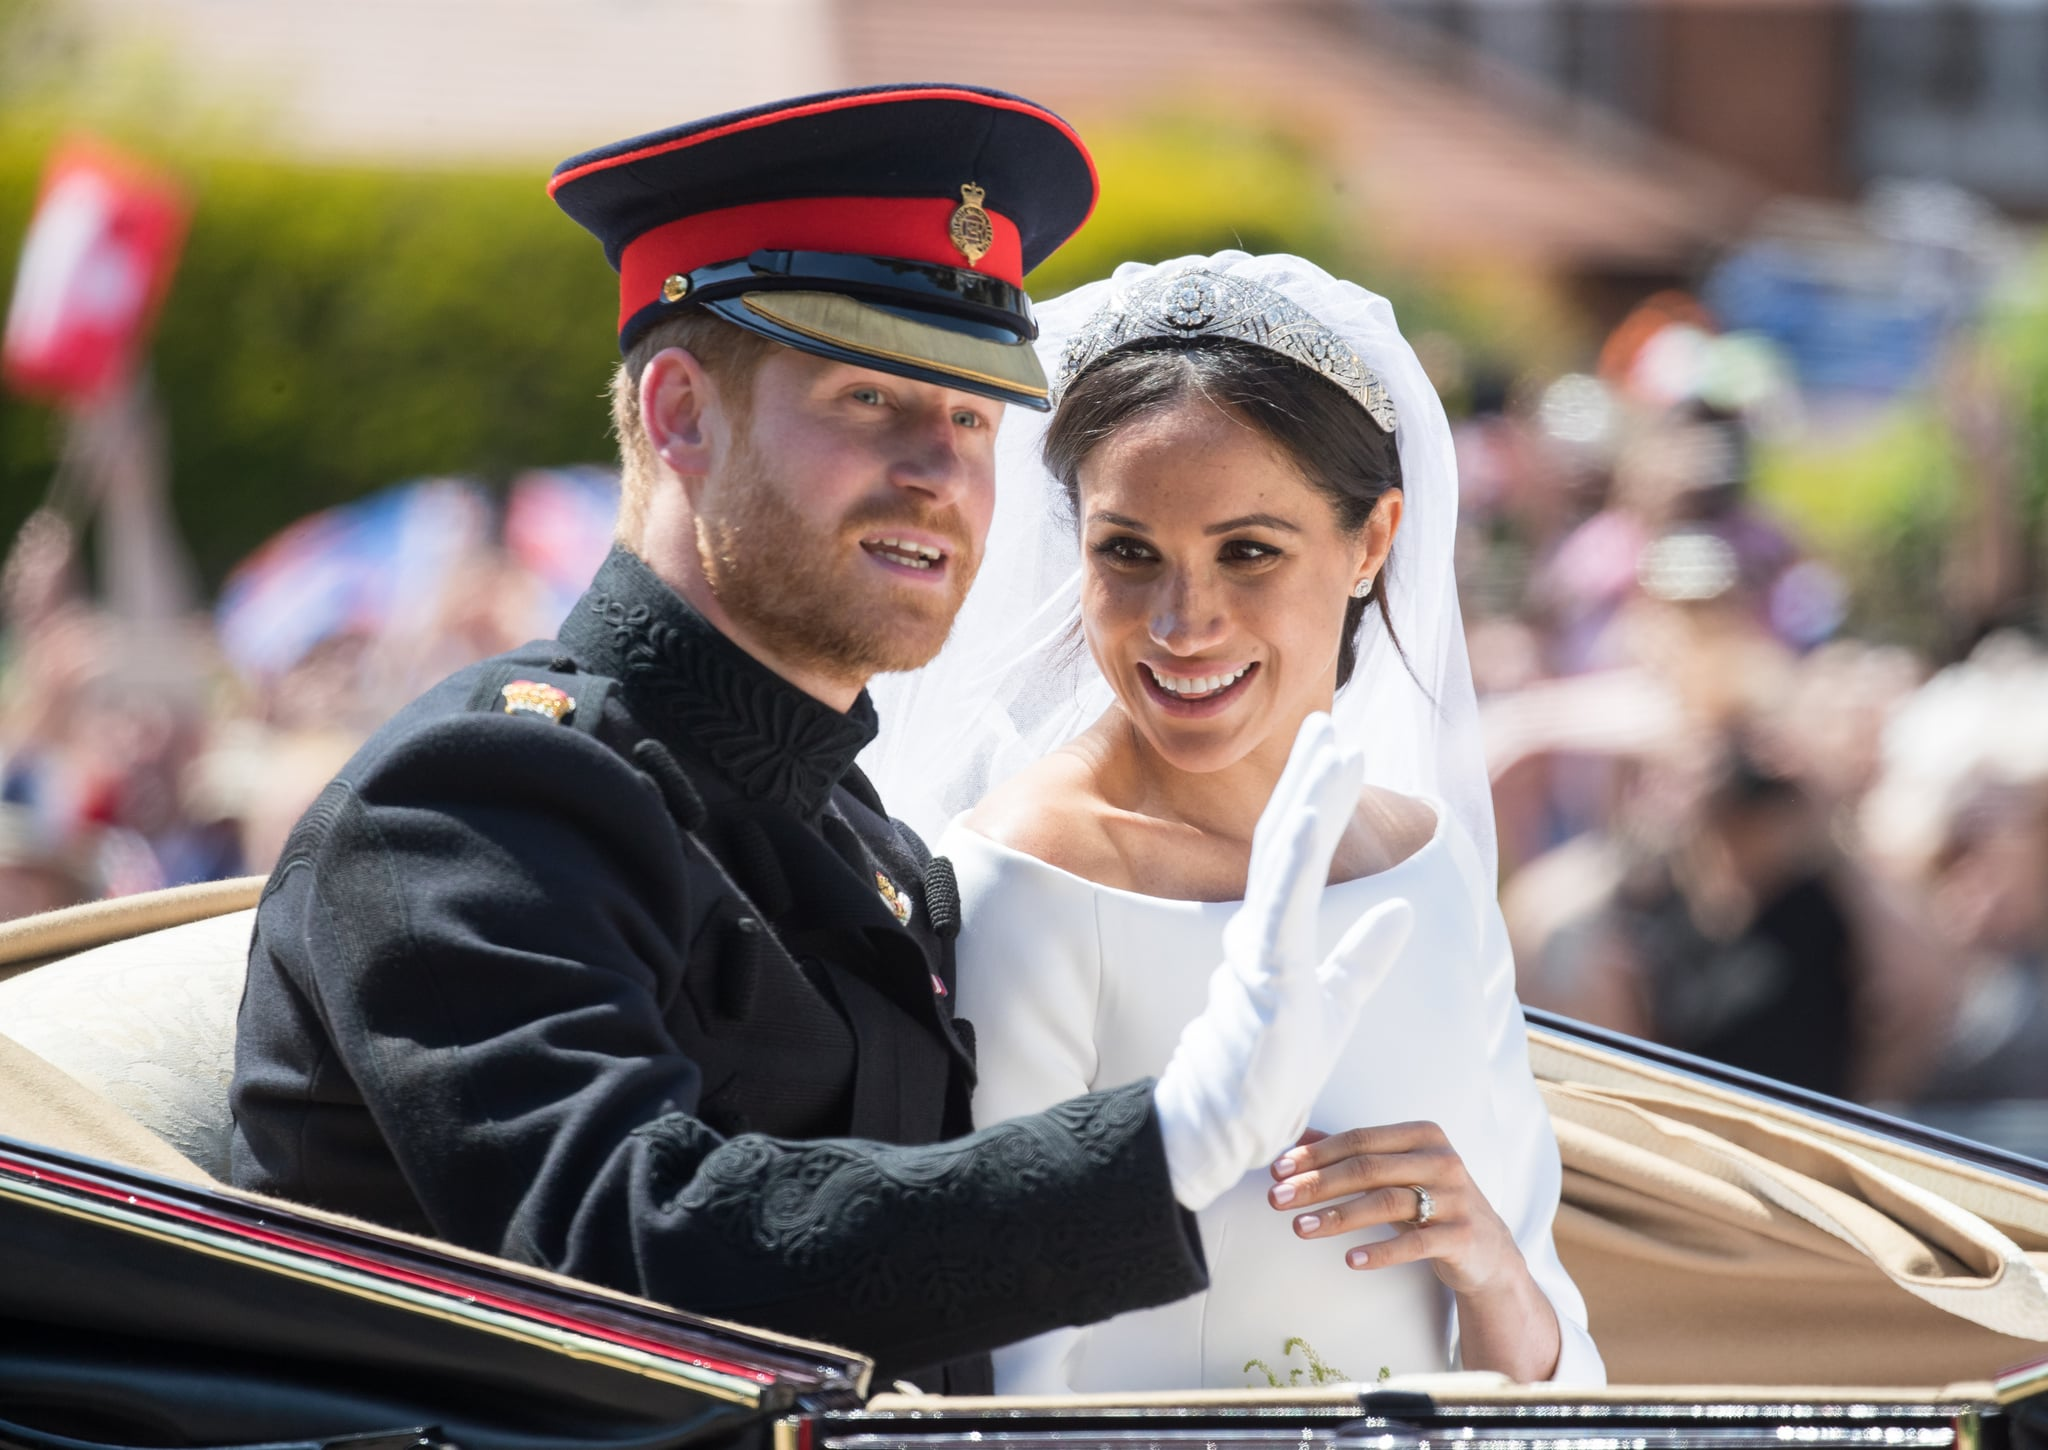 Prince Harry Wedding.When Did Prince Harry And Meghan Markle Get Married Popsugar